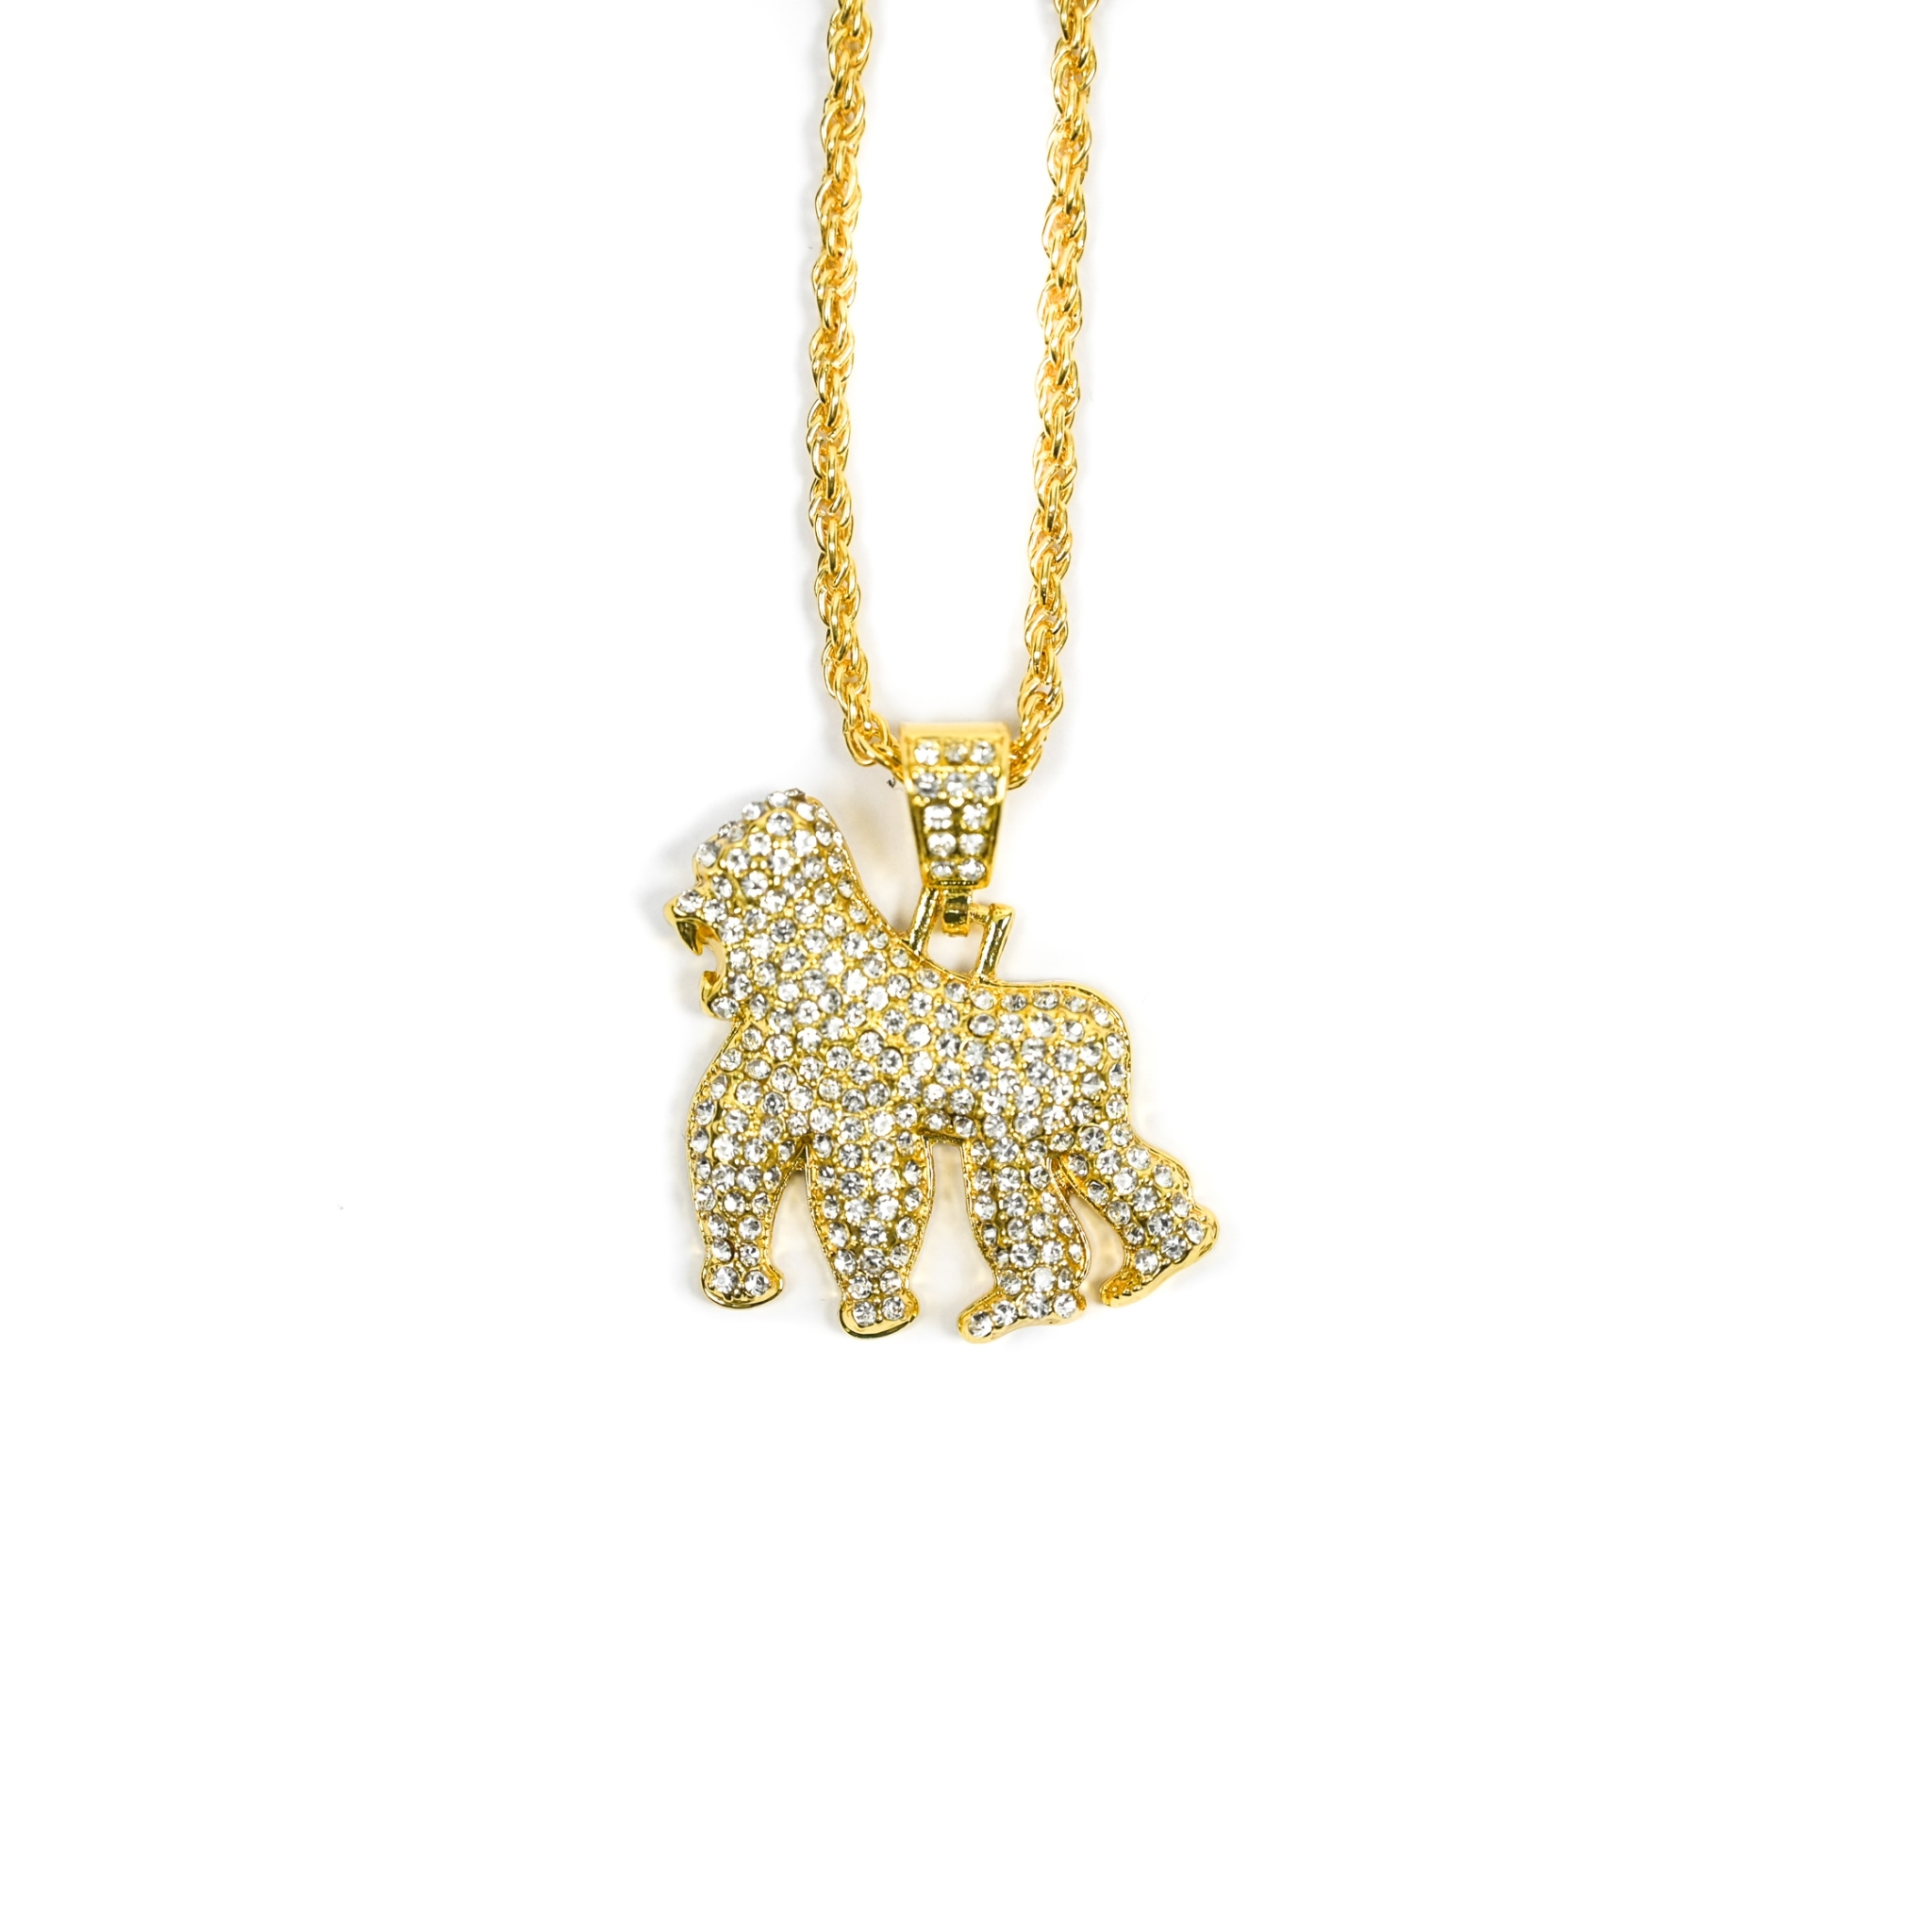 SOLASTA KONG NECKLACE GOLD